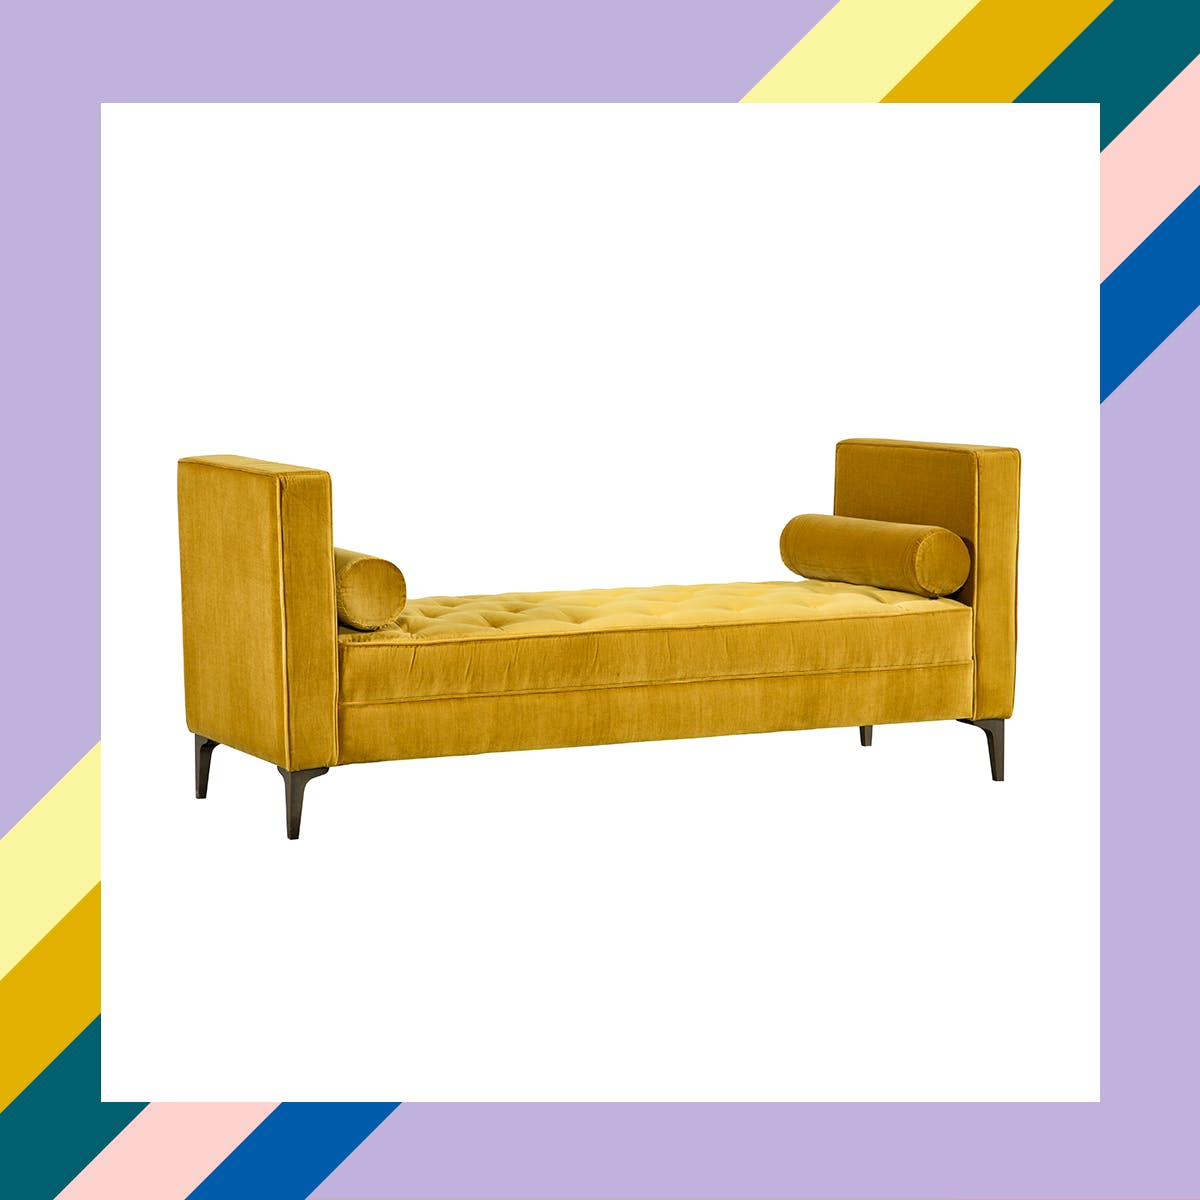 Nate Berkus Just Launched A Home Collection With Hubby Jeremiah Intended For Liv Arm Sofa Chairs By Nate Berkus And Jeremiah Brent (Photo 10 of 20)